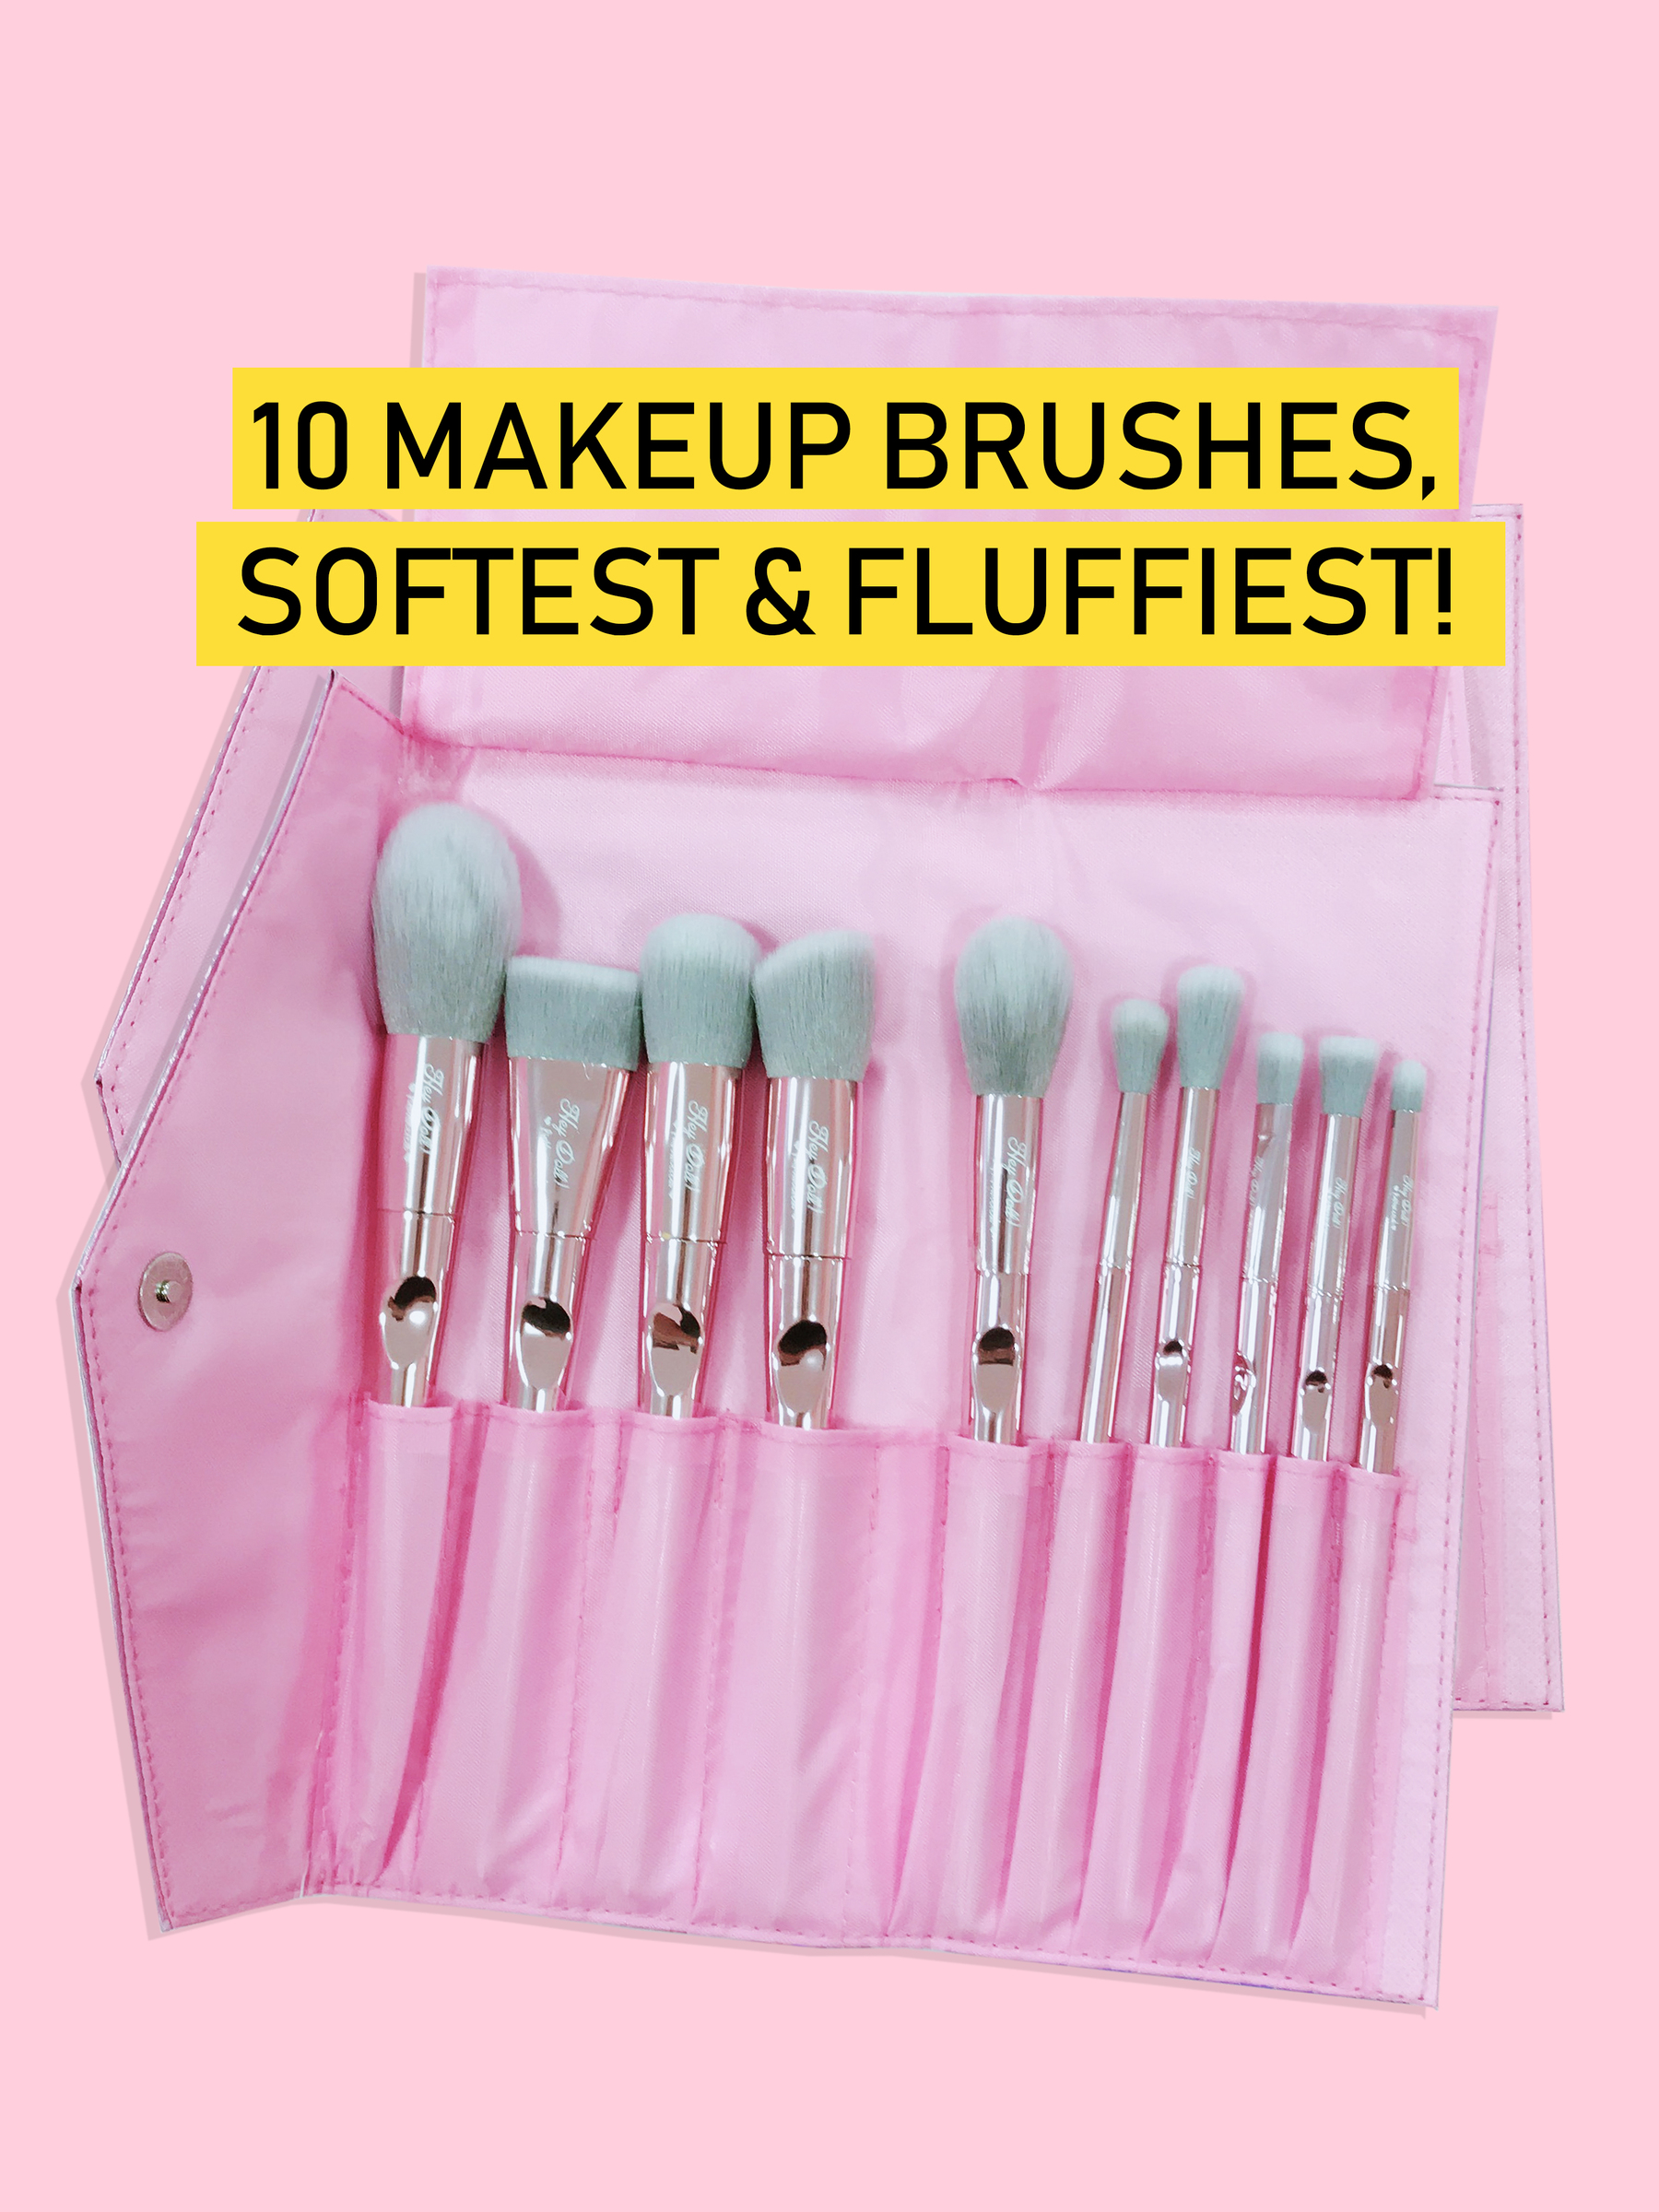 pinkboxcereal makeup brush.jpg